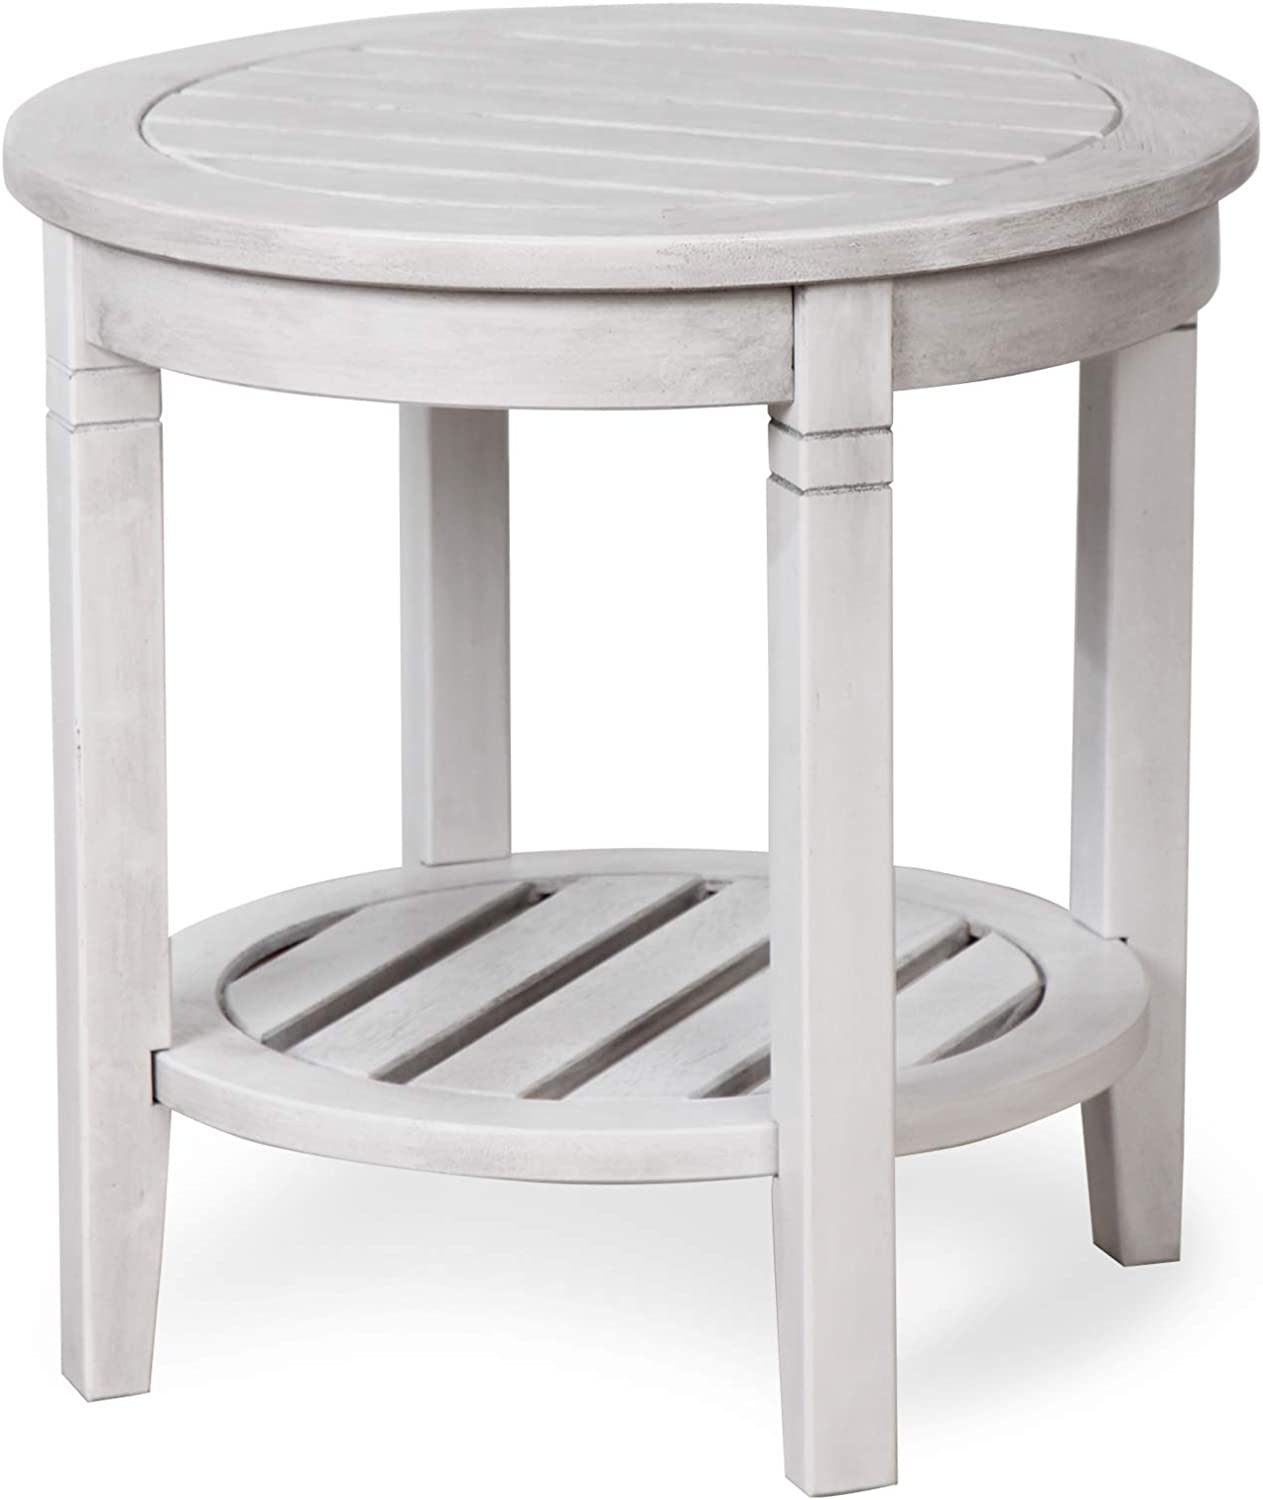 Cambridge Casual Solid Wood Bentley Side Table with Shelf, White Wash